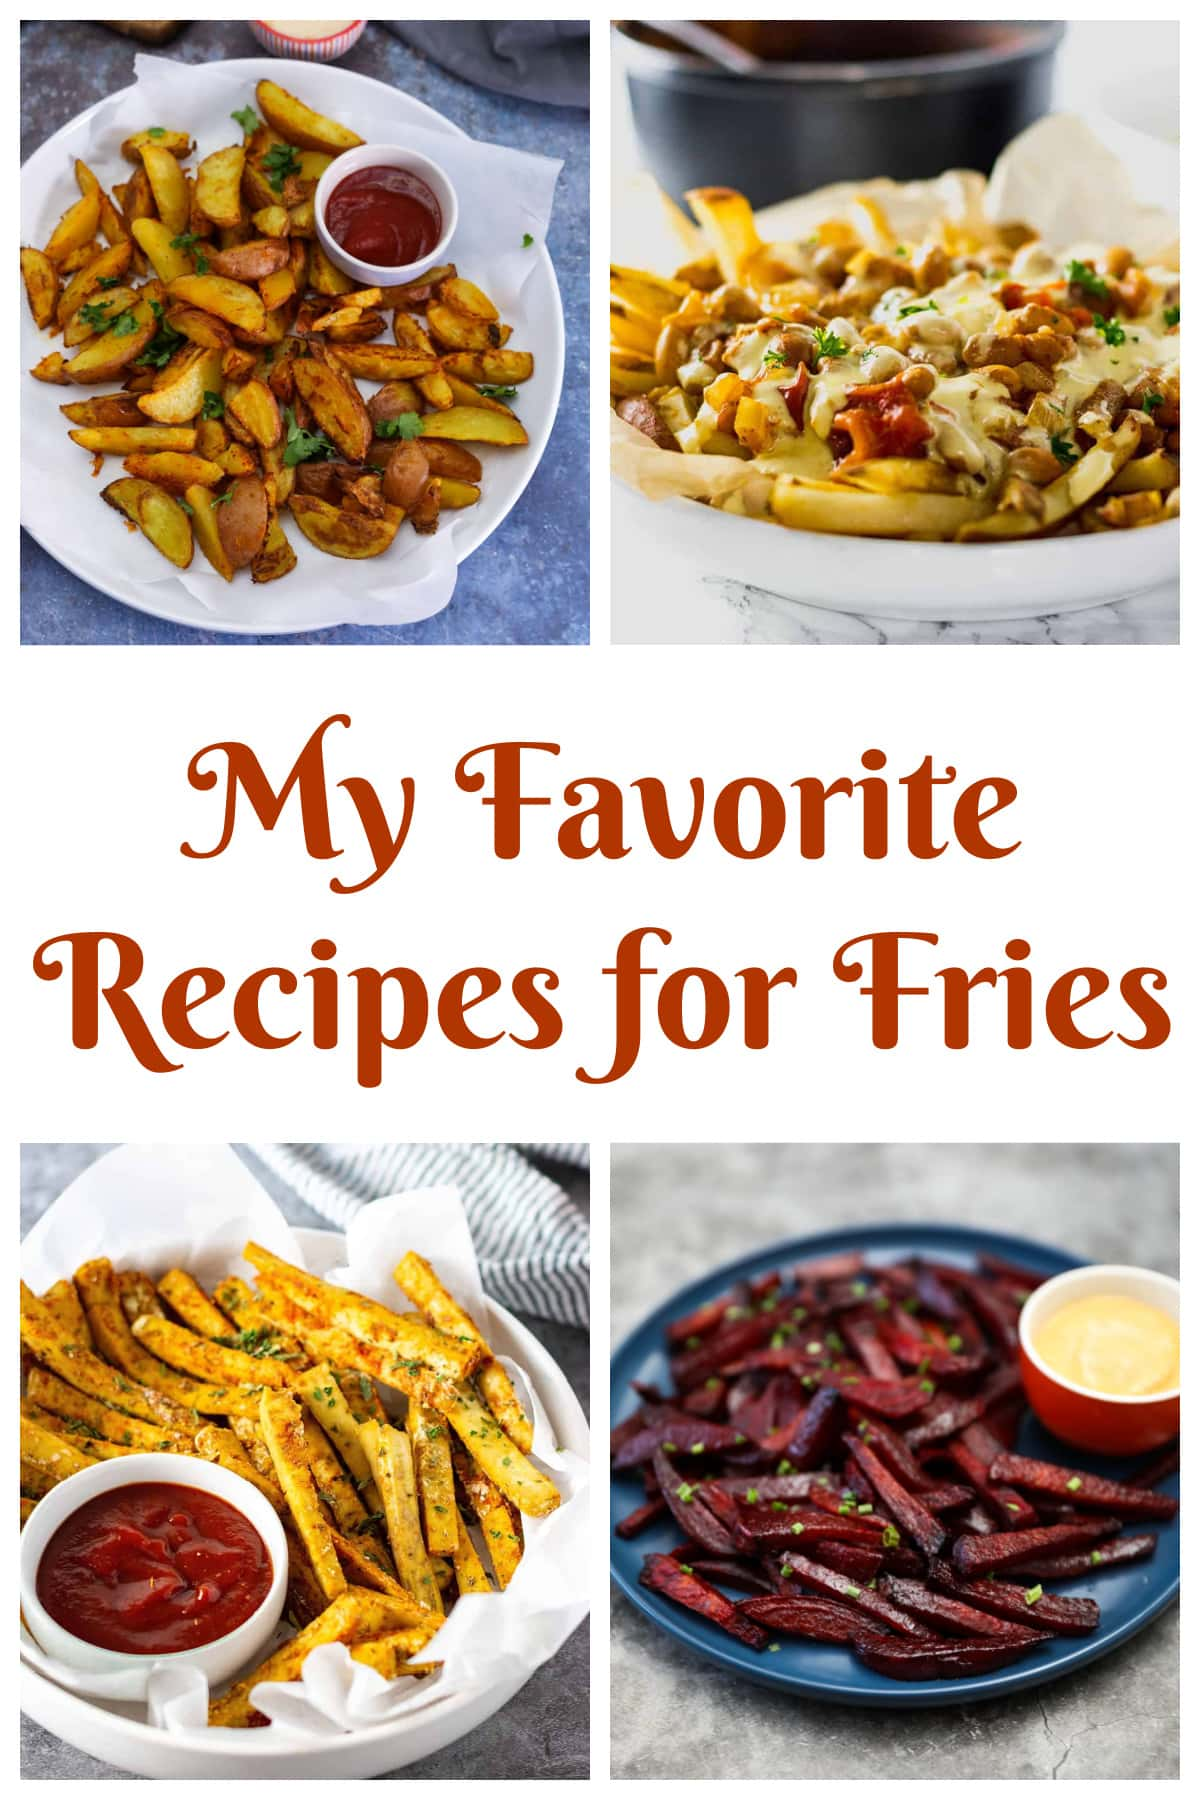 My Favorite Recipes for Fries